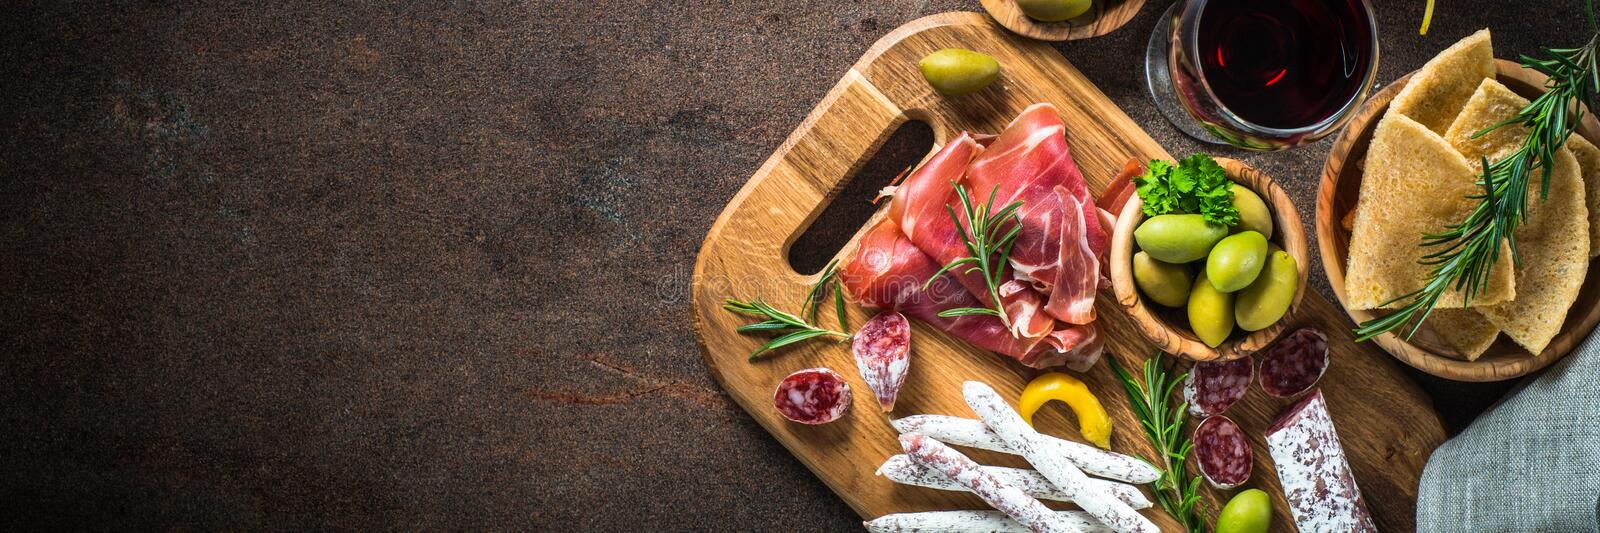 Antipasto - sliced meat, ham, salami, olives and wine top view. royalty free stock image